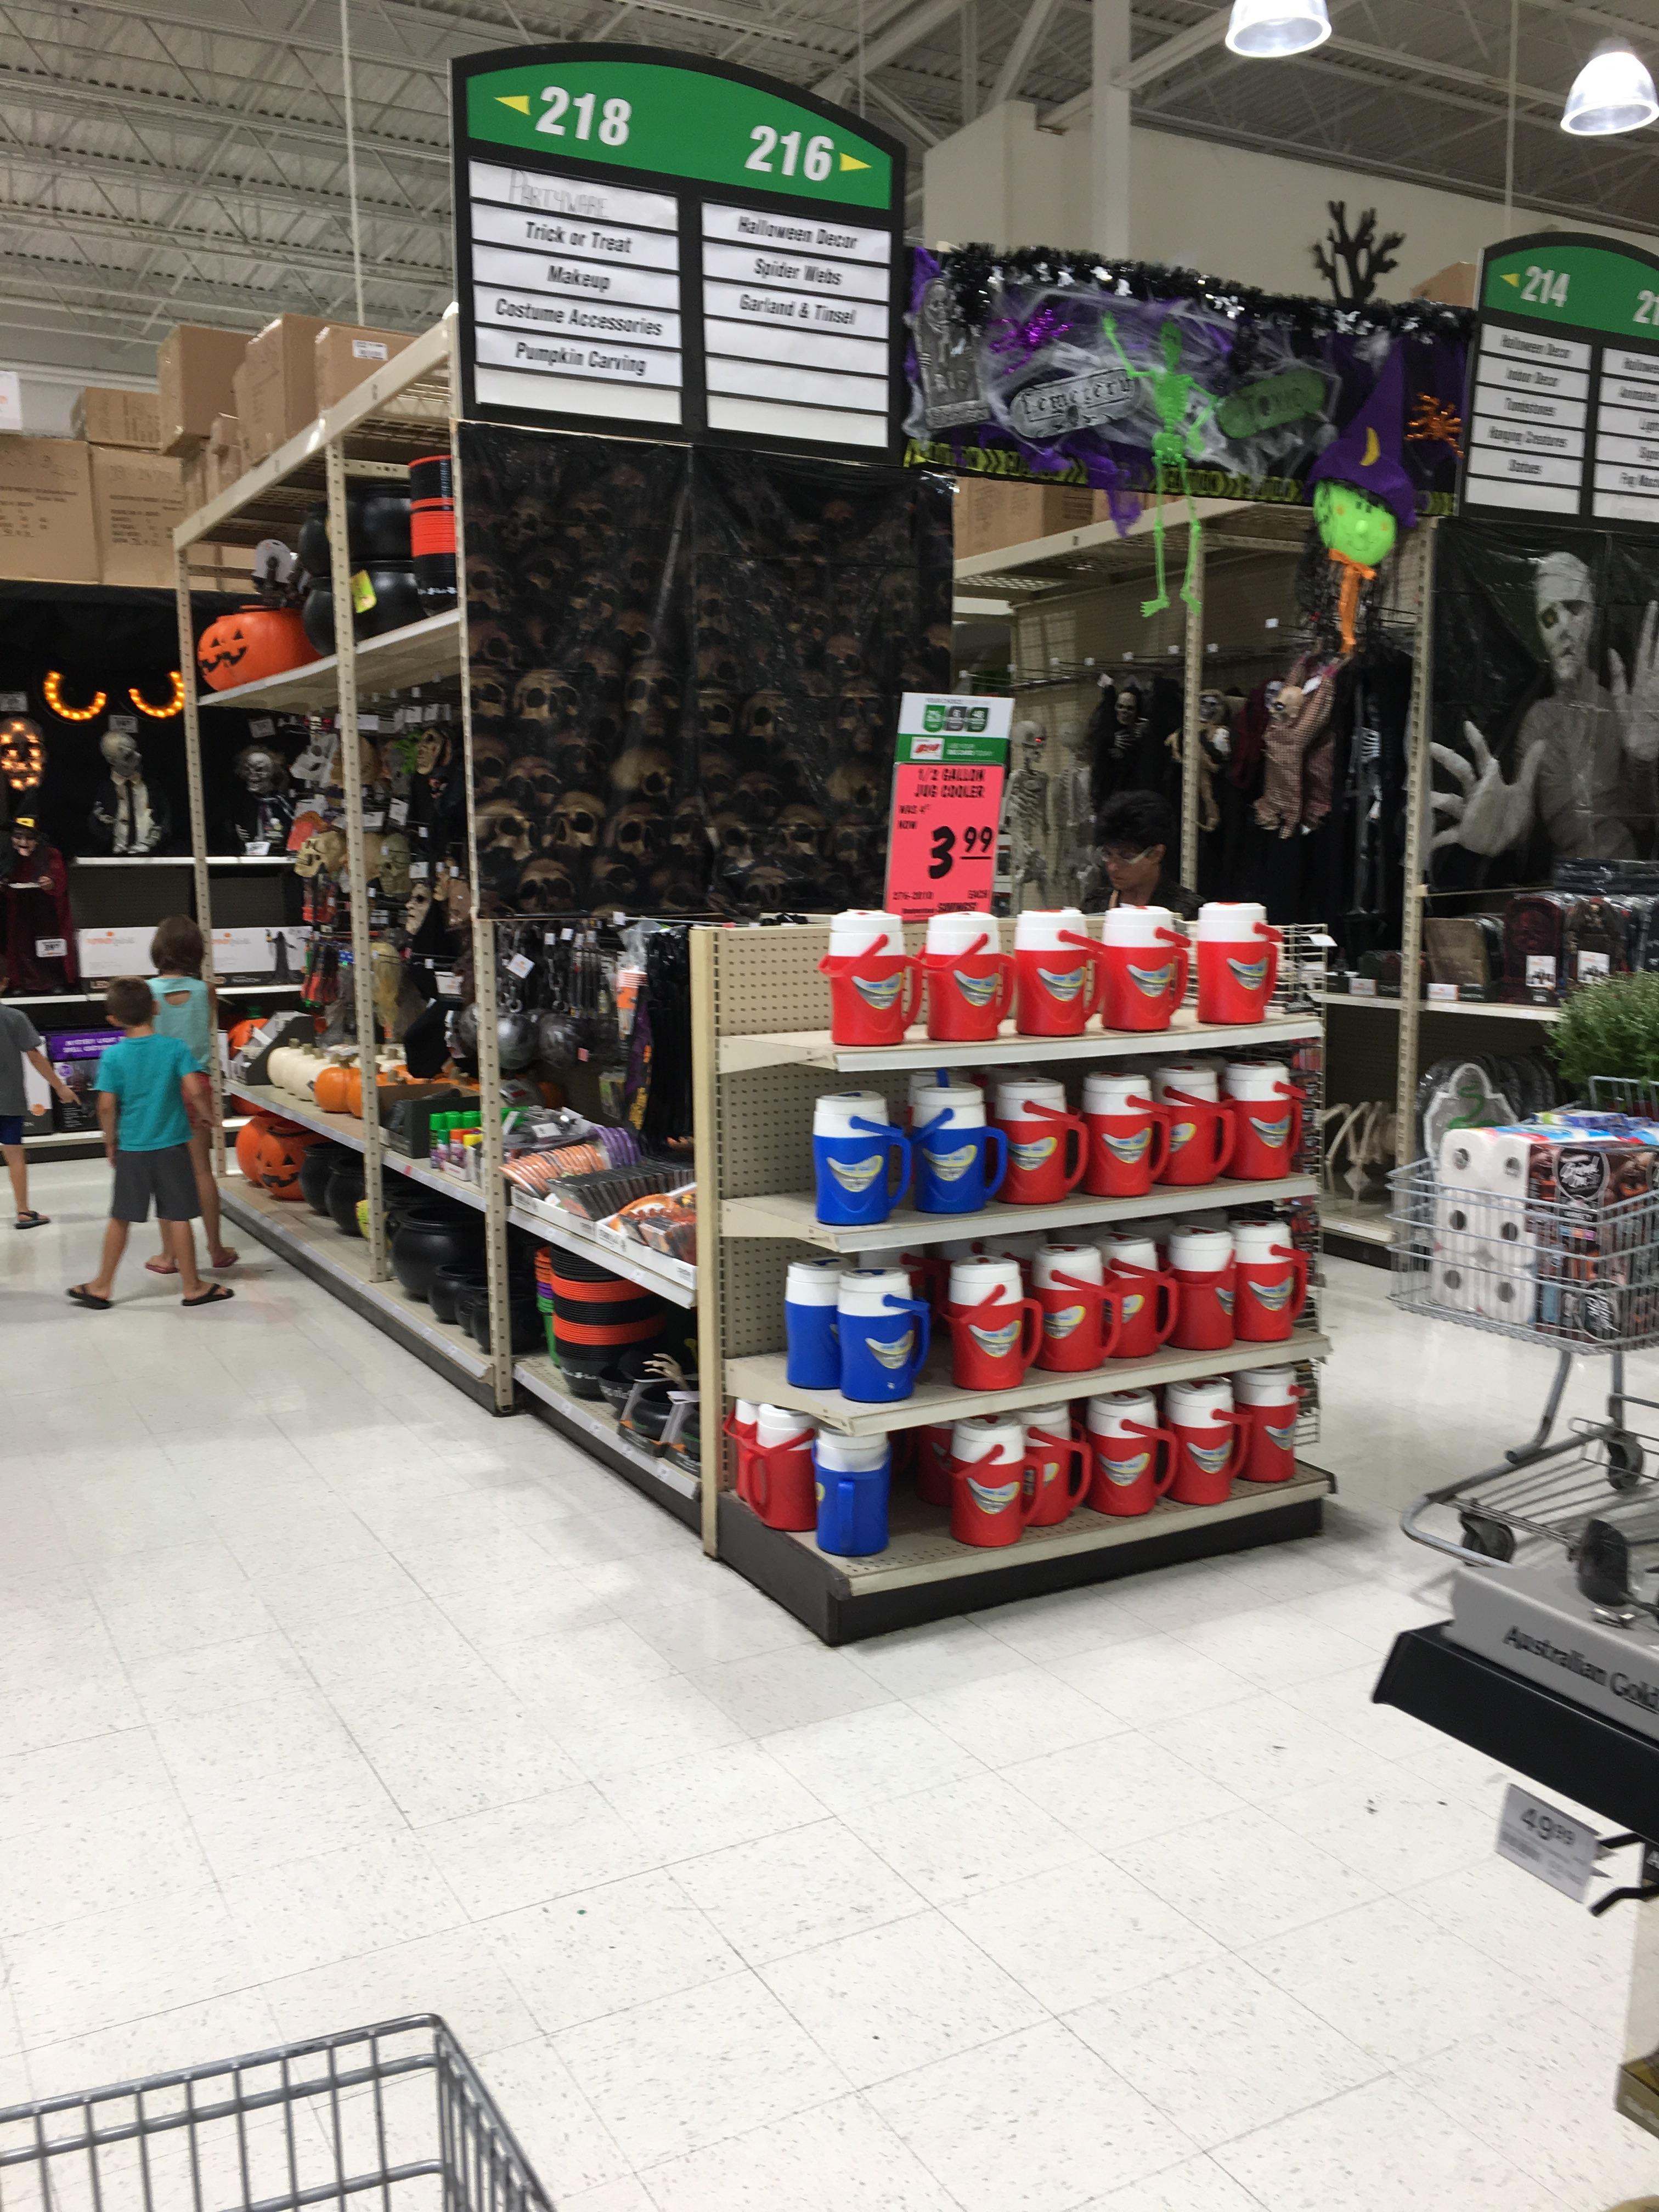 Tempting You Can Always Rely On Menards To Have Re Halloween Stuff Out Menards Halloween Decorations Halloween Decorations Home Depot Halloween Spider Home Depot Halloween Projector curbed Home Depot Halloween